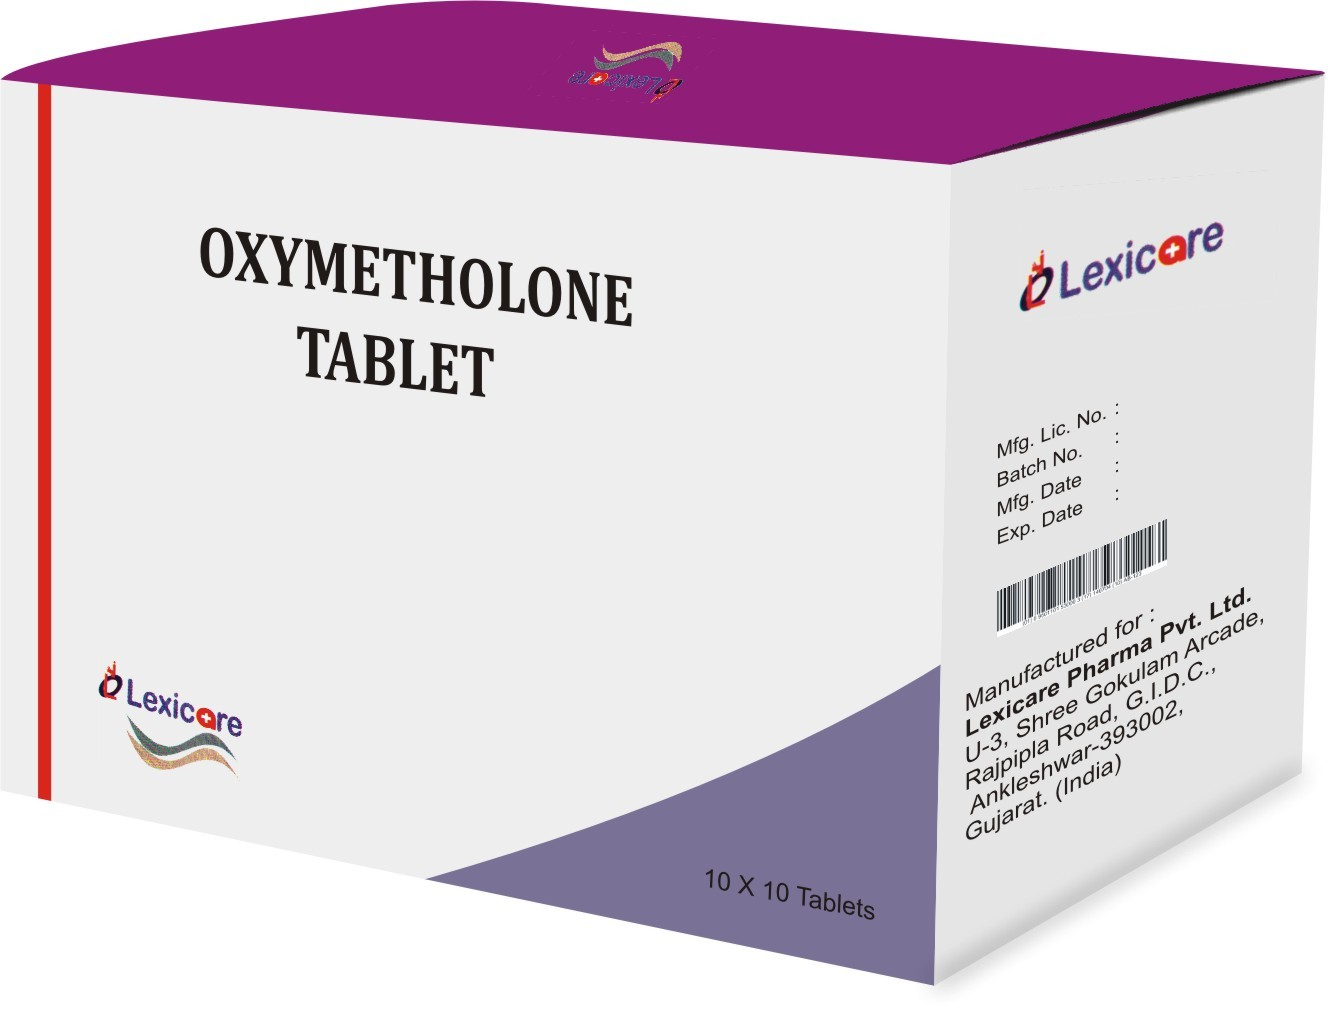 OXYMETHOLONE TABLET